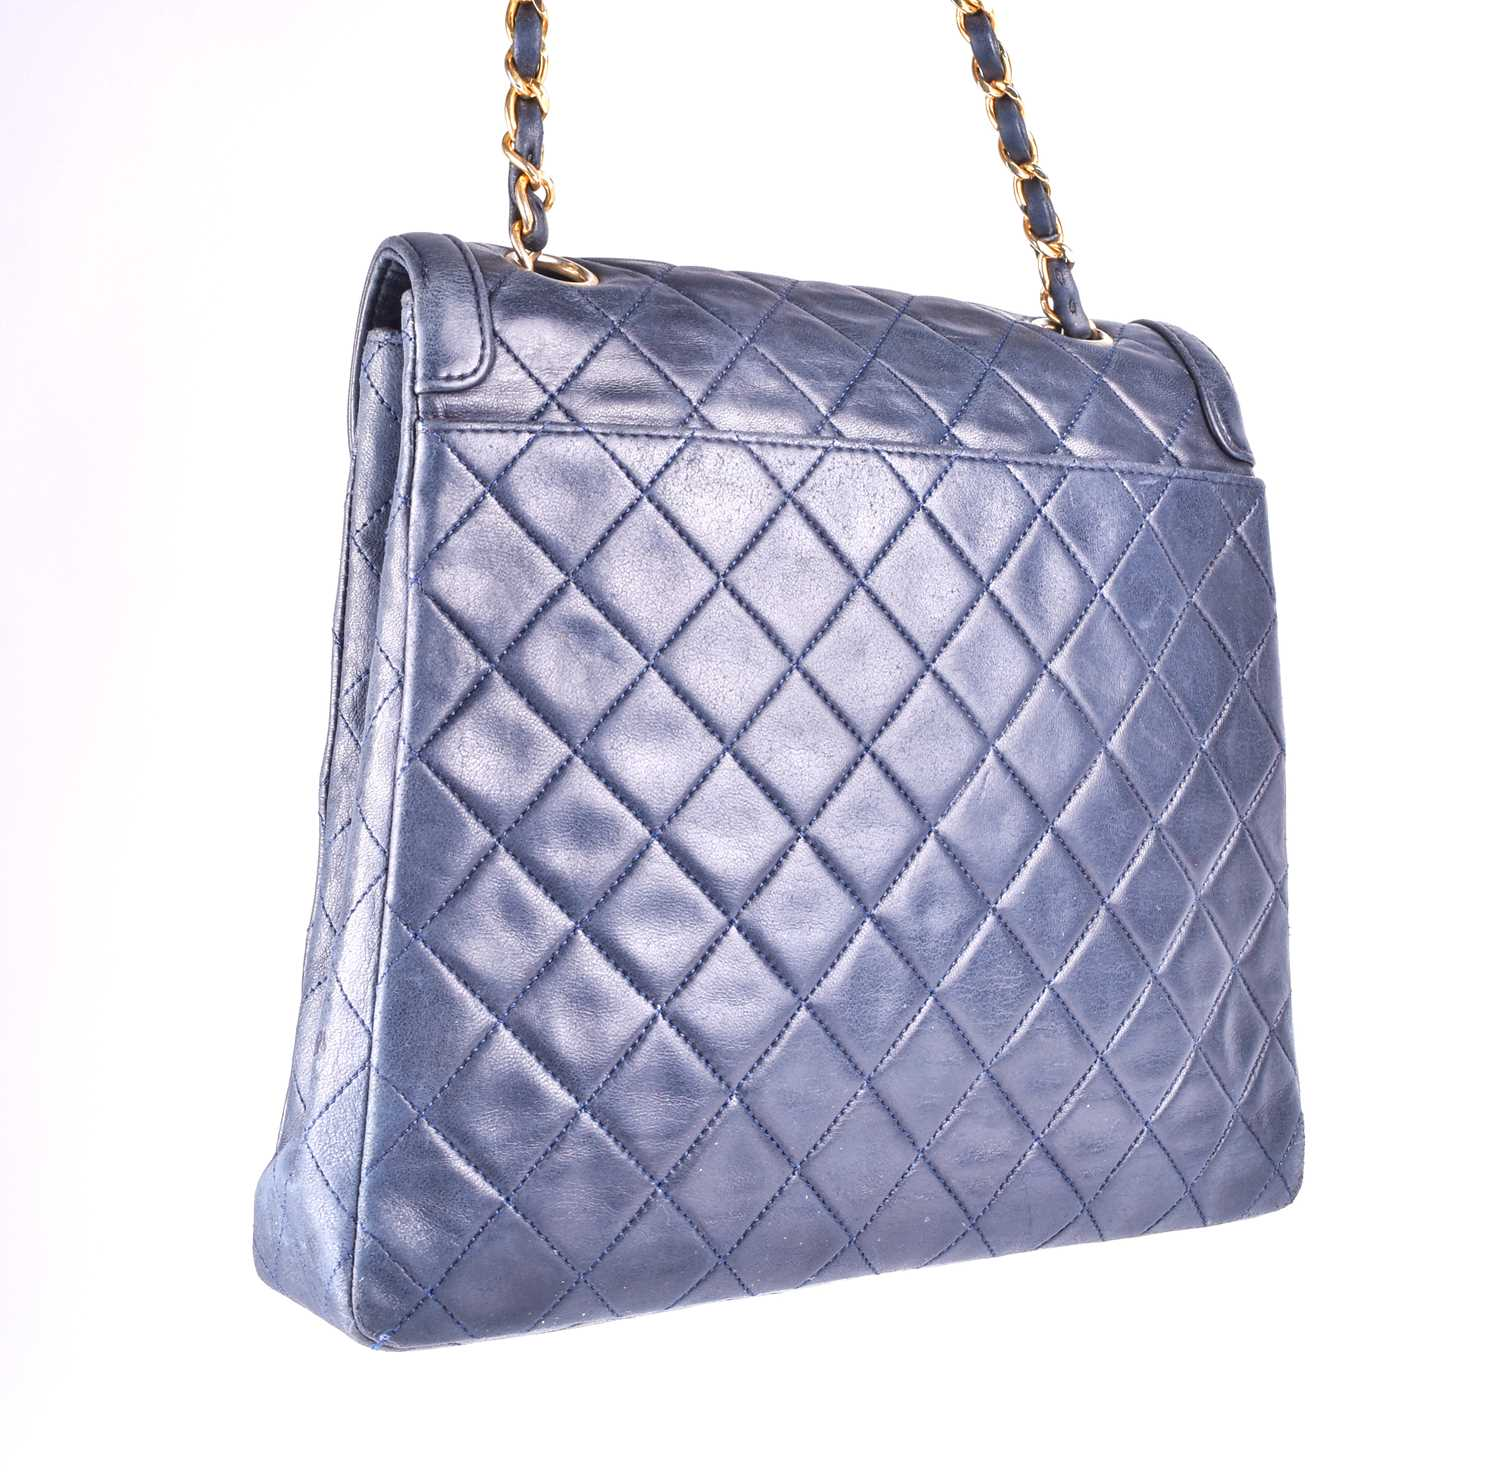 Chanel. A classic quilted leather handbag, of tapered square design, with gold tone CC logo clasp, - Image 13 of 26